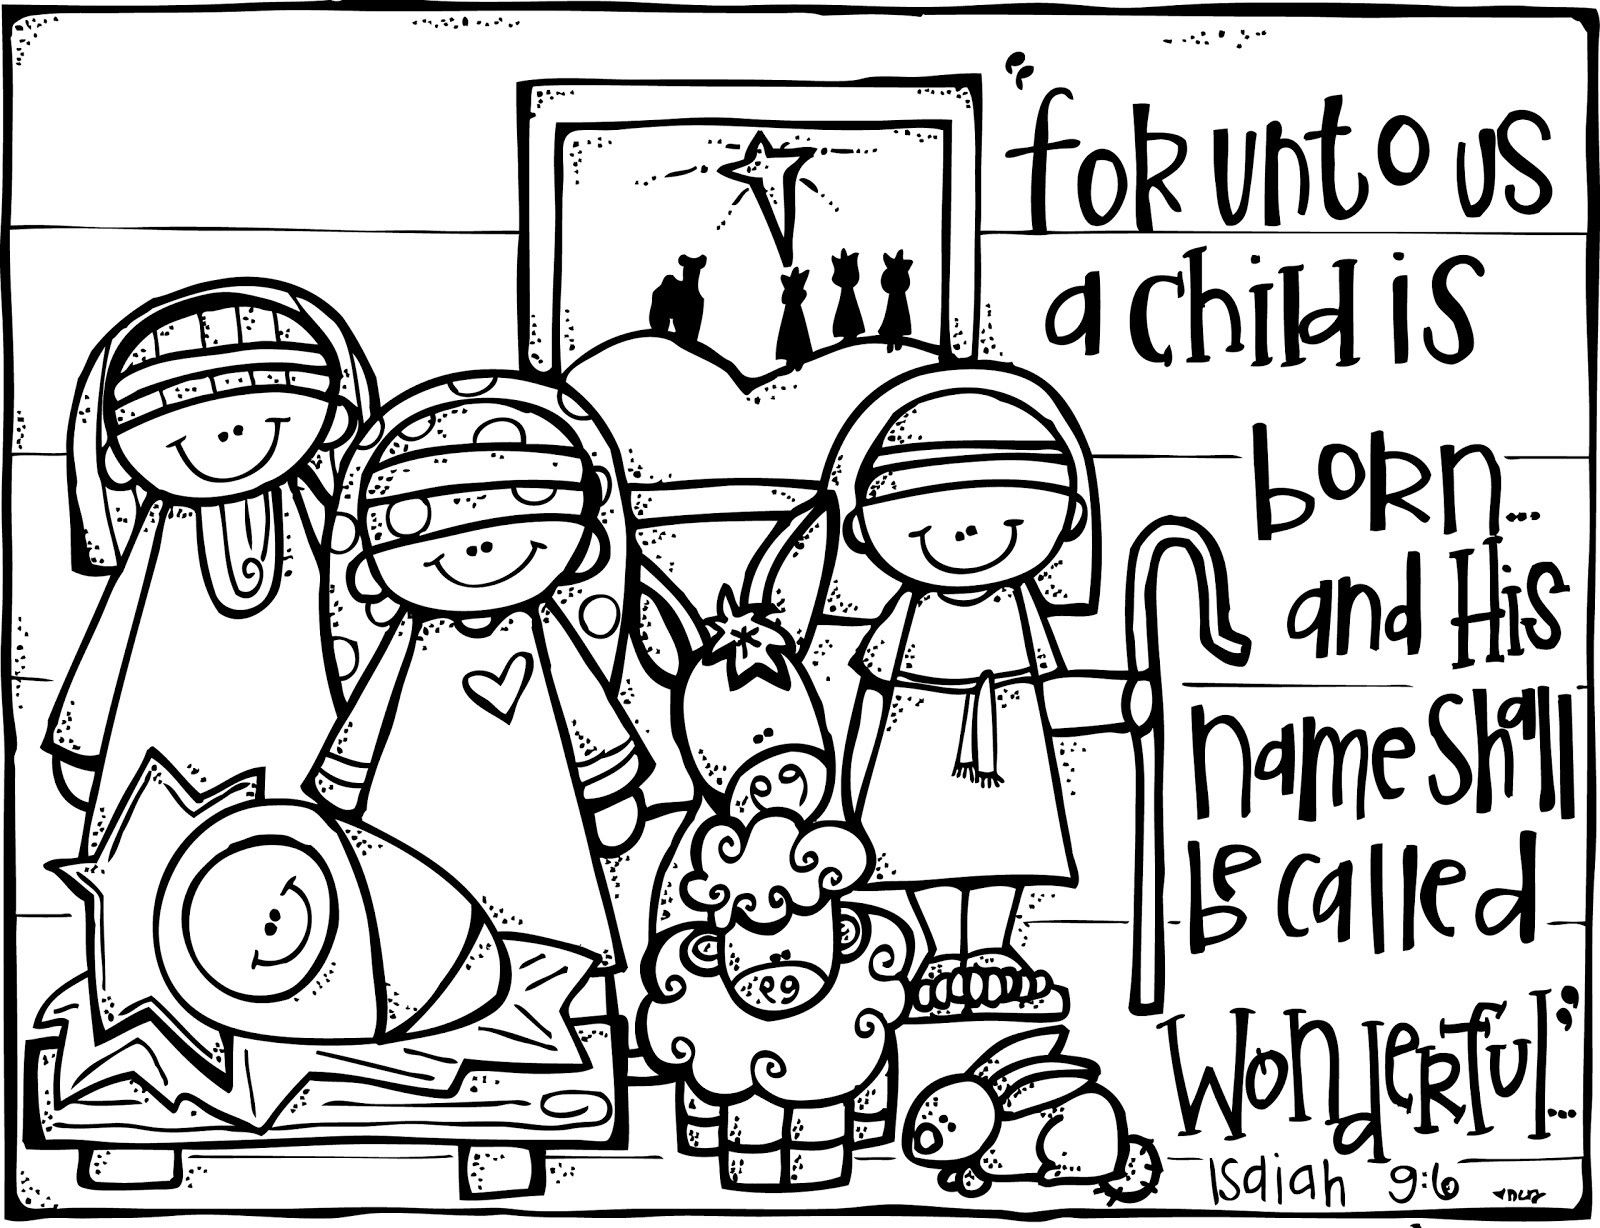 jesus coloring pages pdf coloring innovative nativity sheet for pretty free printable pages jesus b christian christmas nativity coloring preschool christmas jesus coloring pages pdf coloring